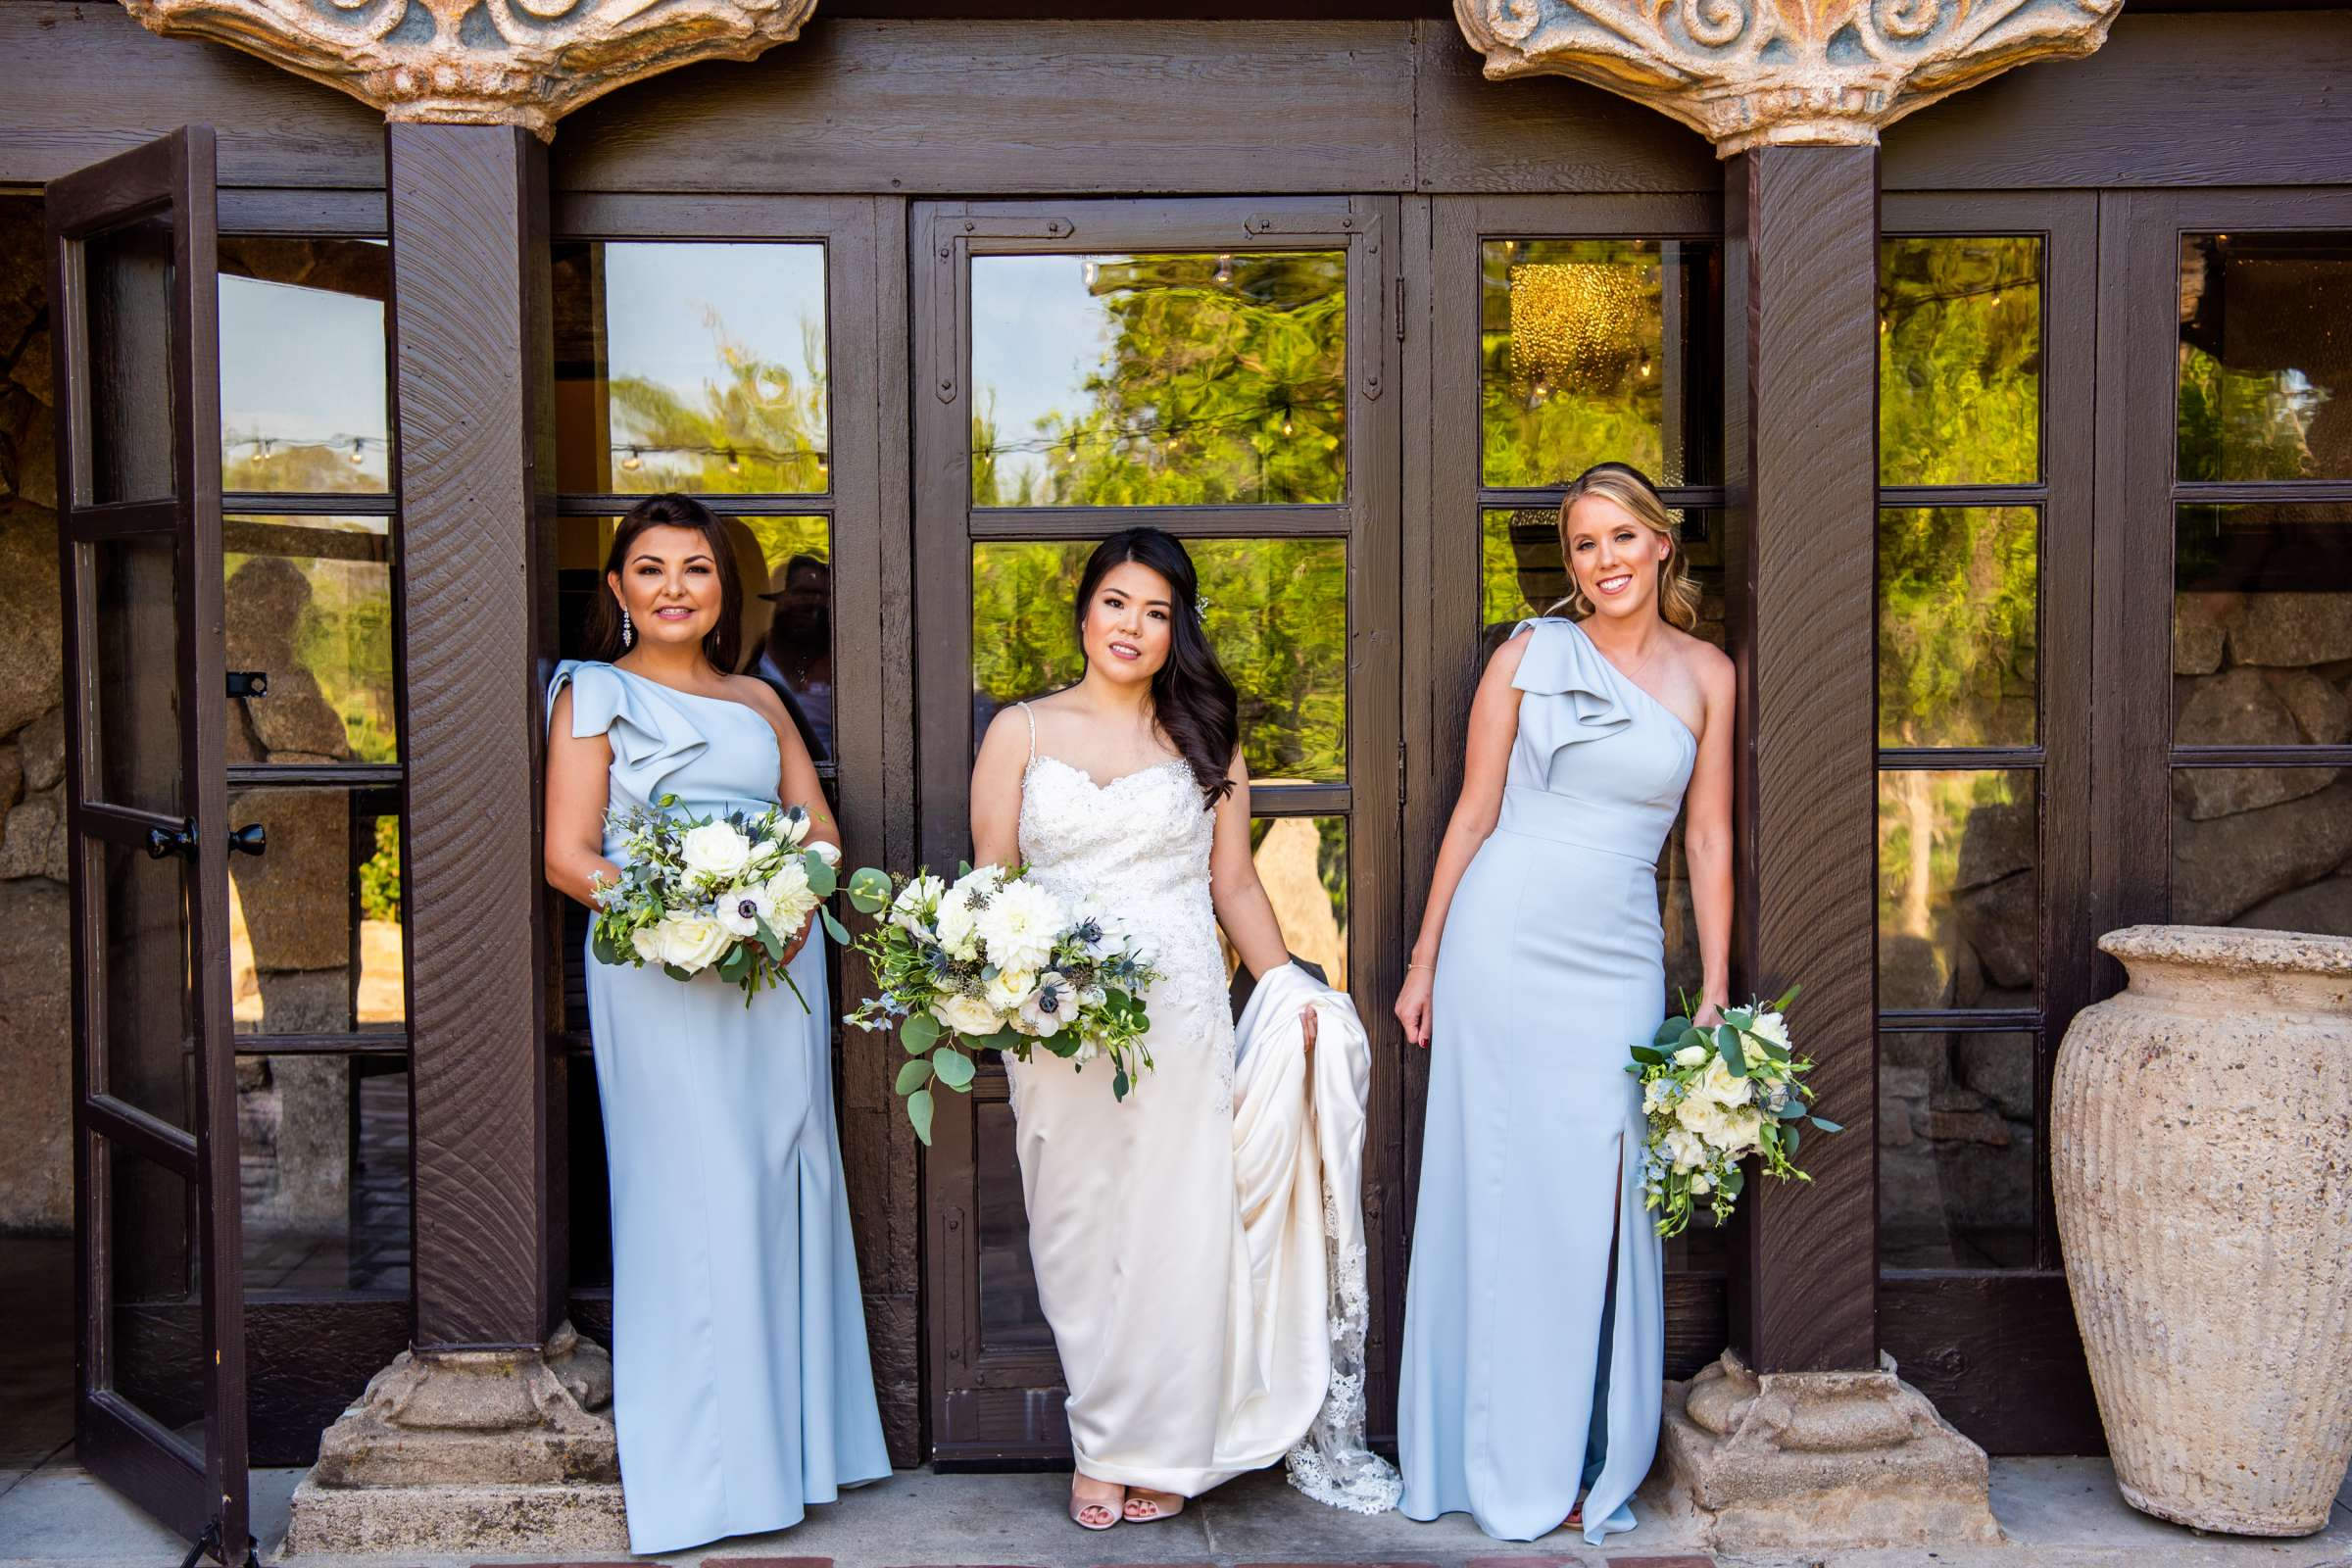 Mt Woodson Castle Wedding coordinated by I Do Weddings, Aya and Jared Wedding Photo #486907 by True Photography